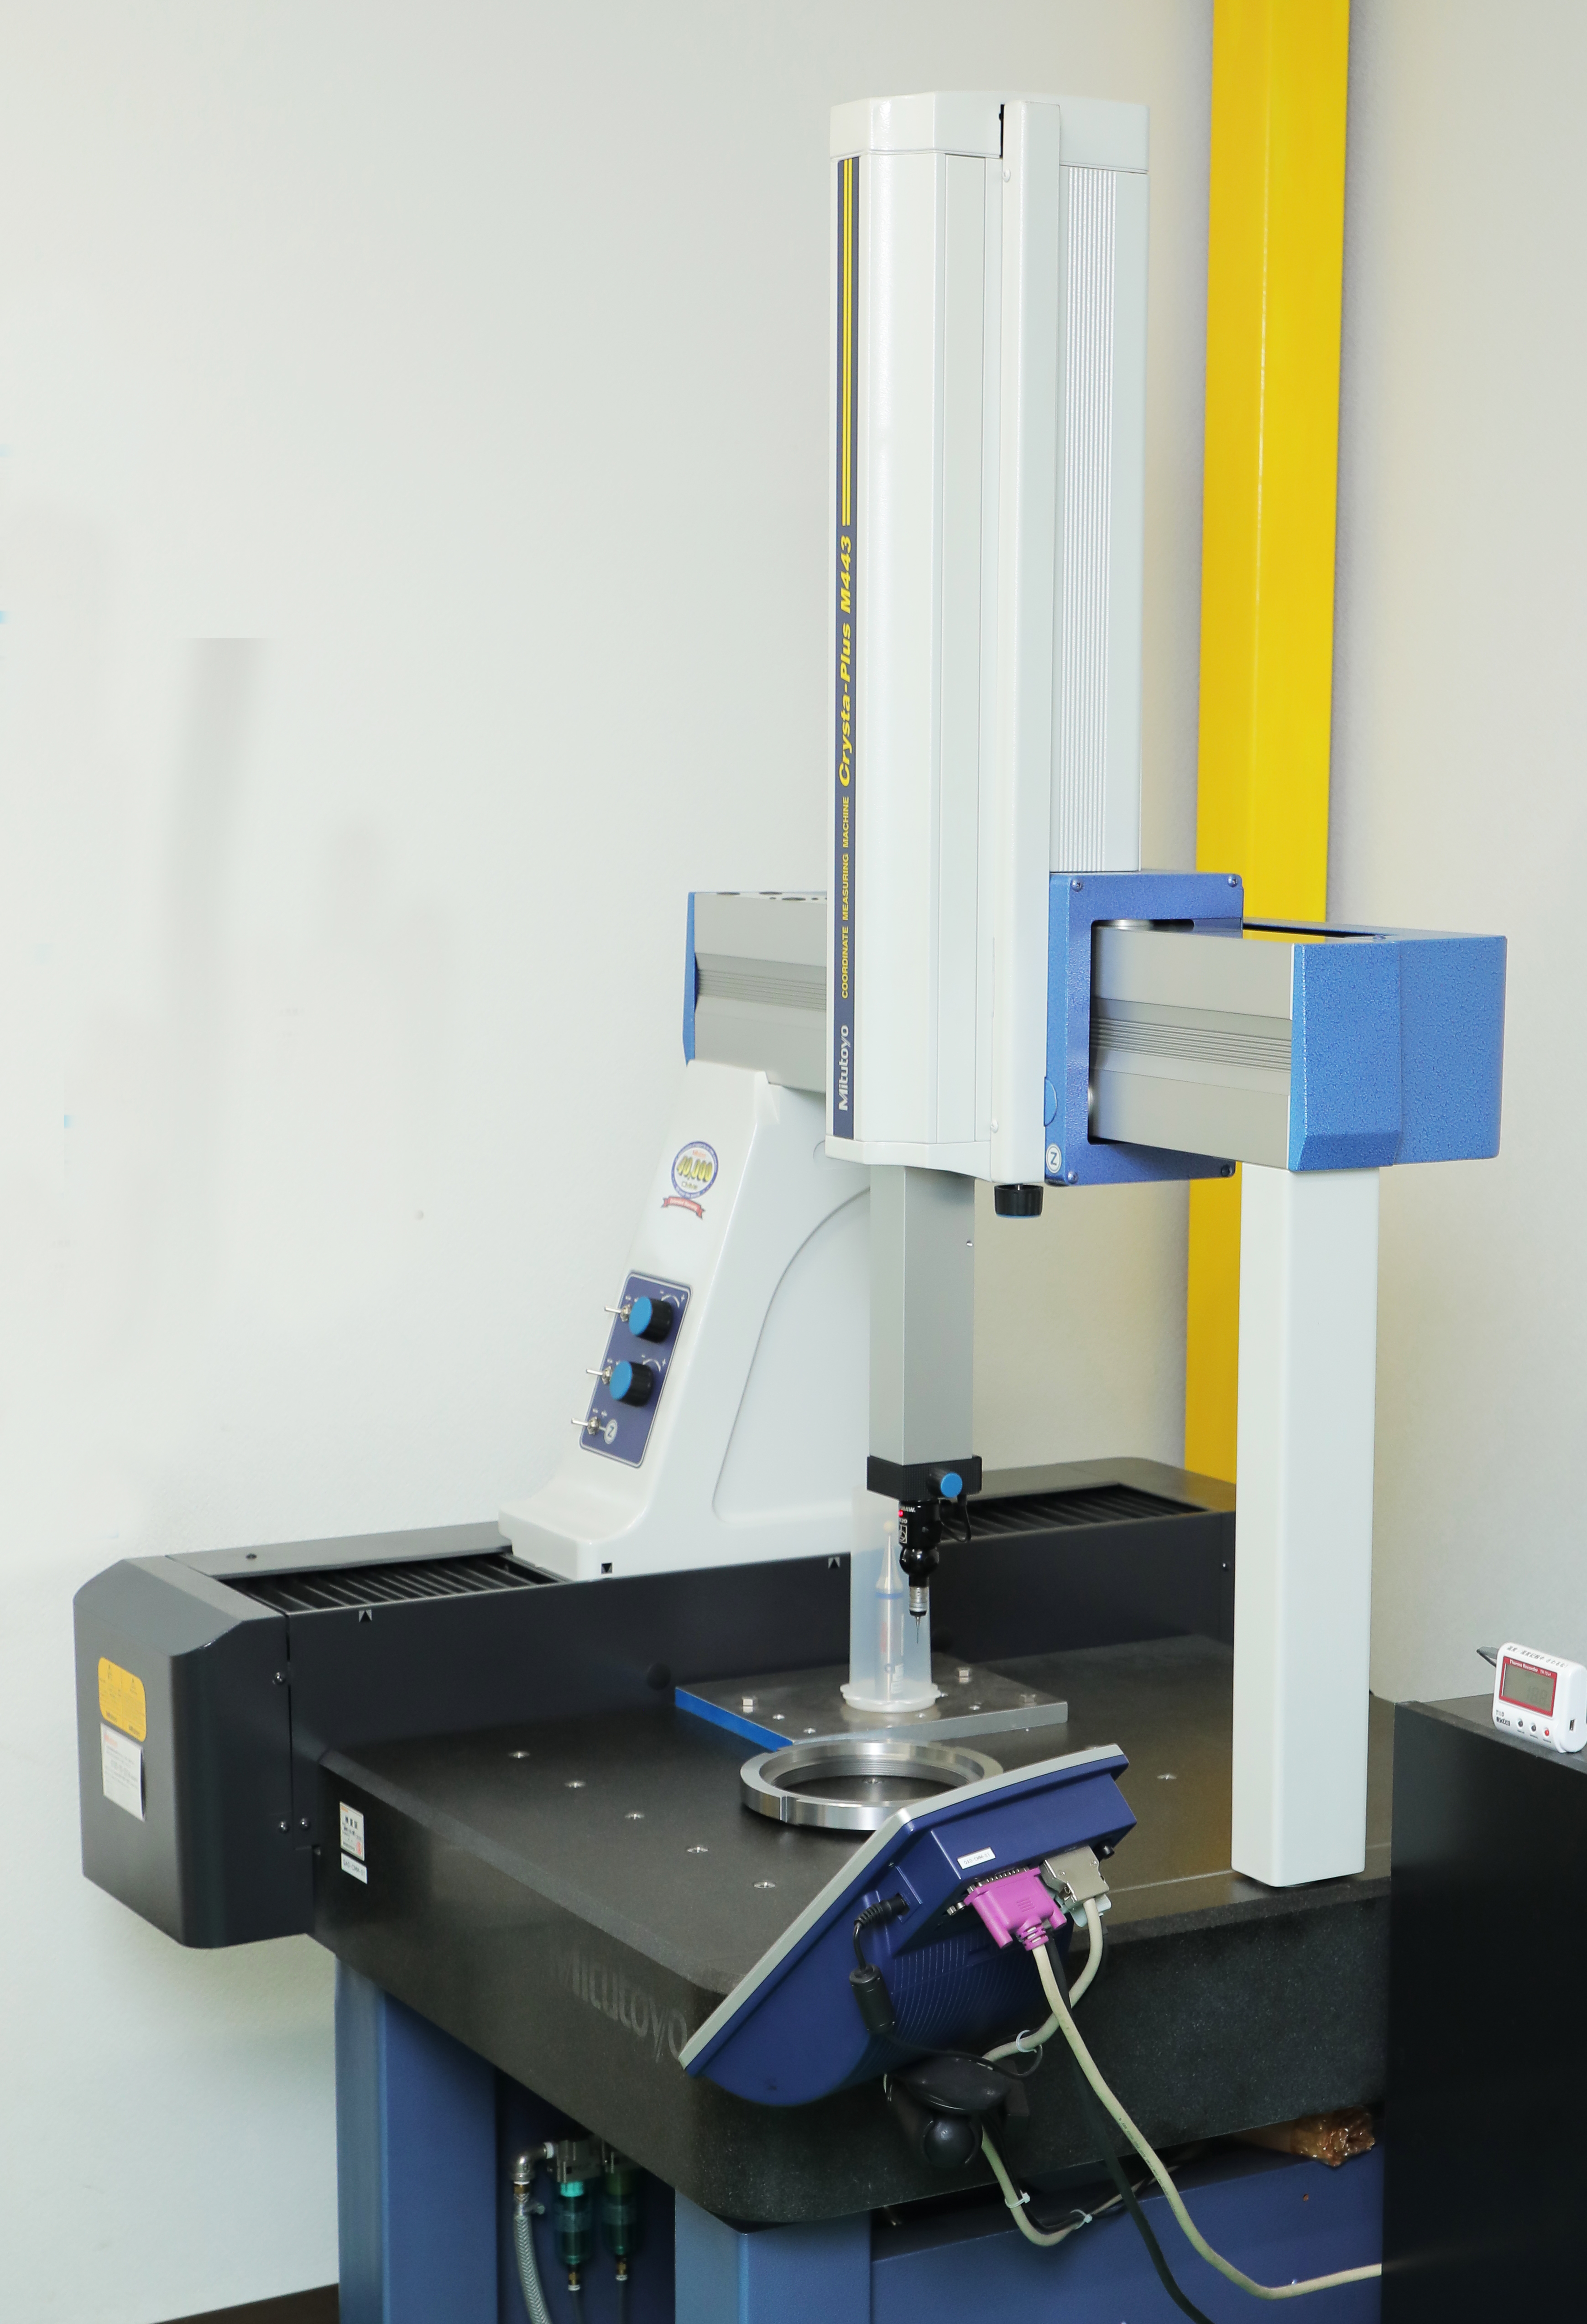 3D coordinate measurement device